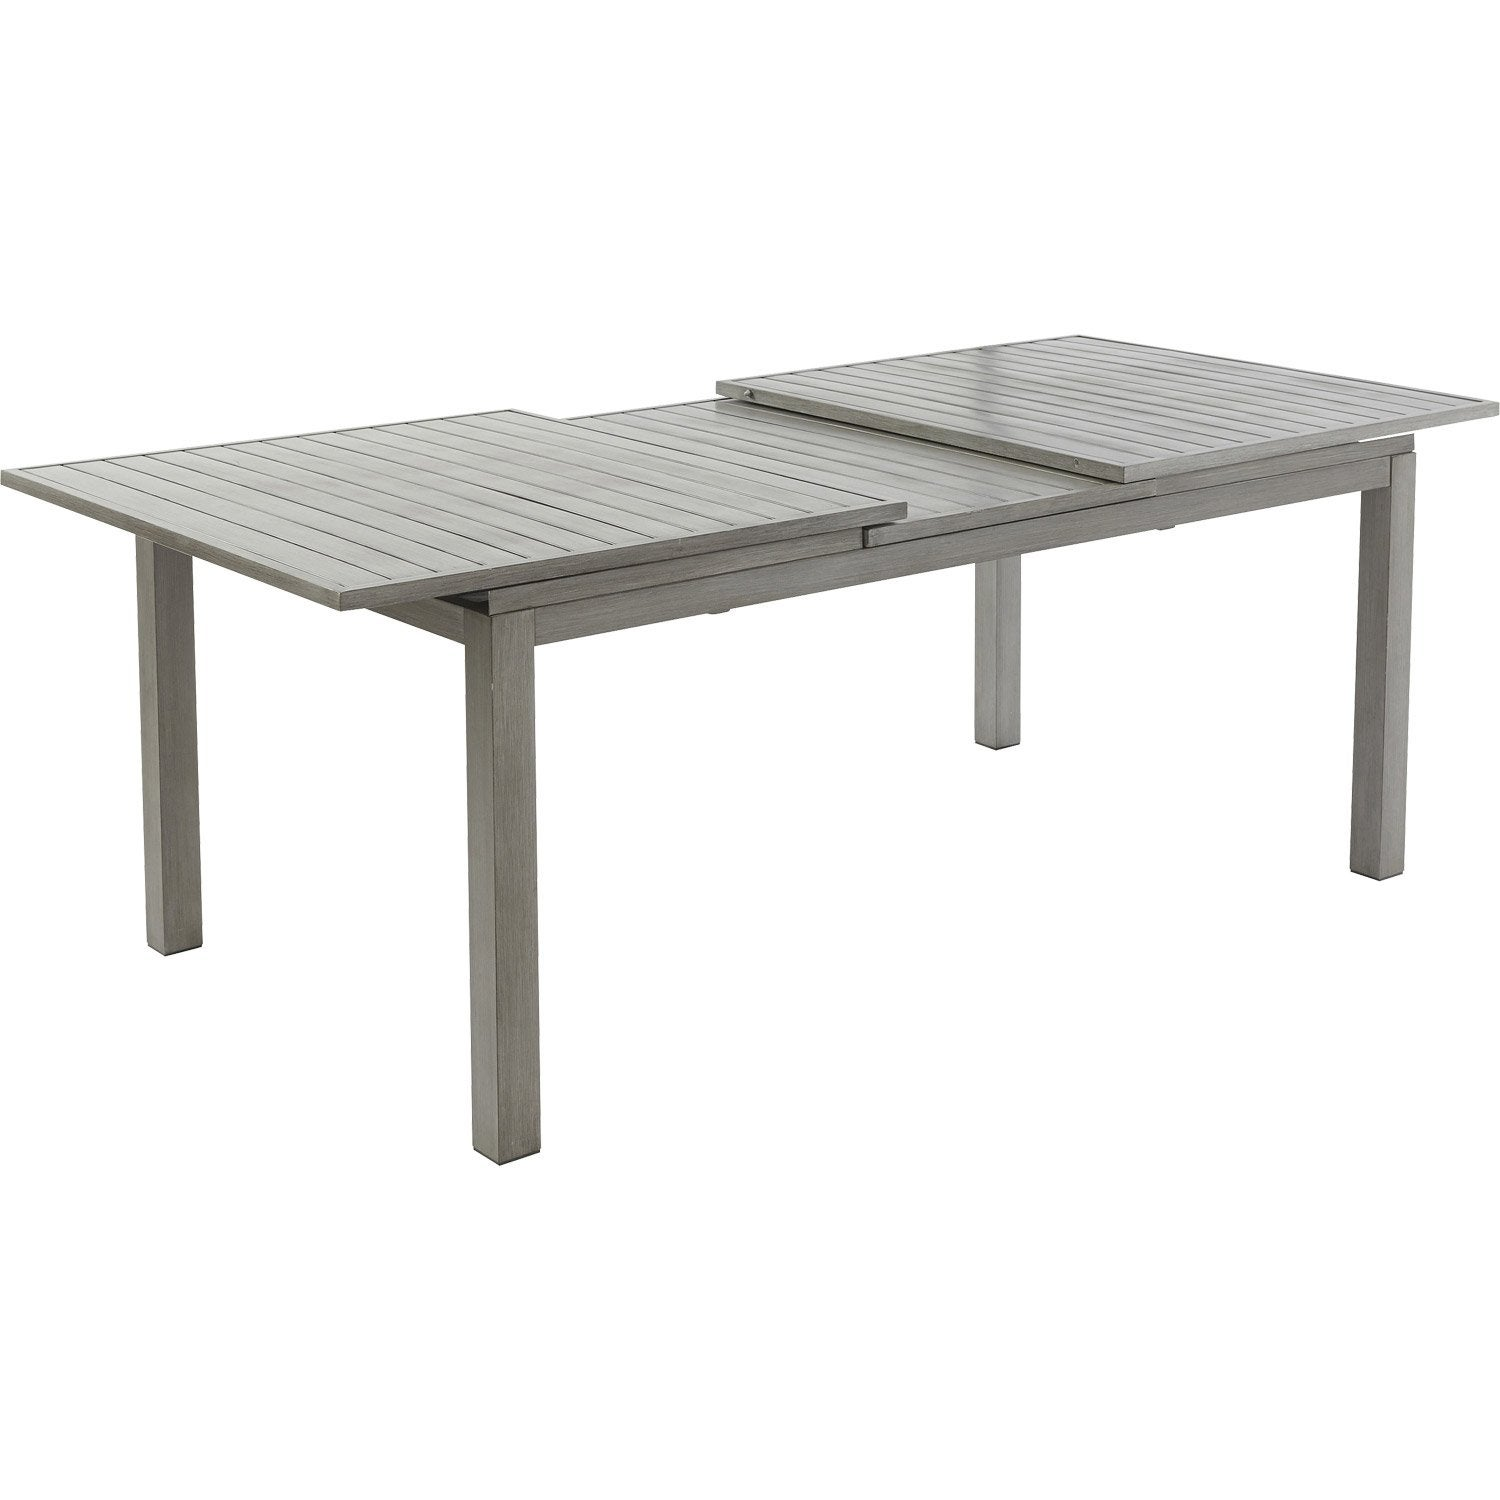 Table de jardin avec extension rectangulaire aluwood for Table cuisine rallonge